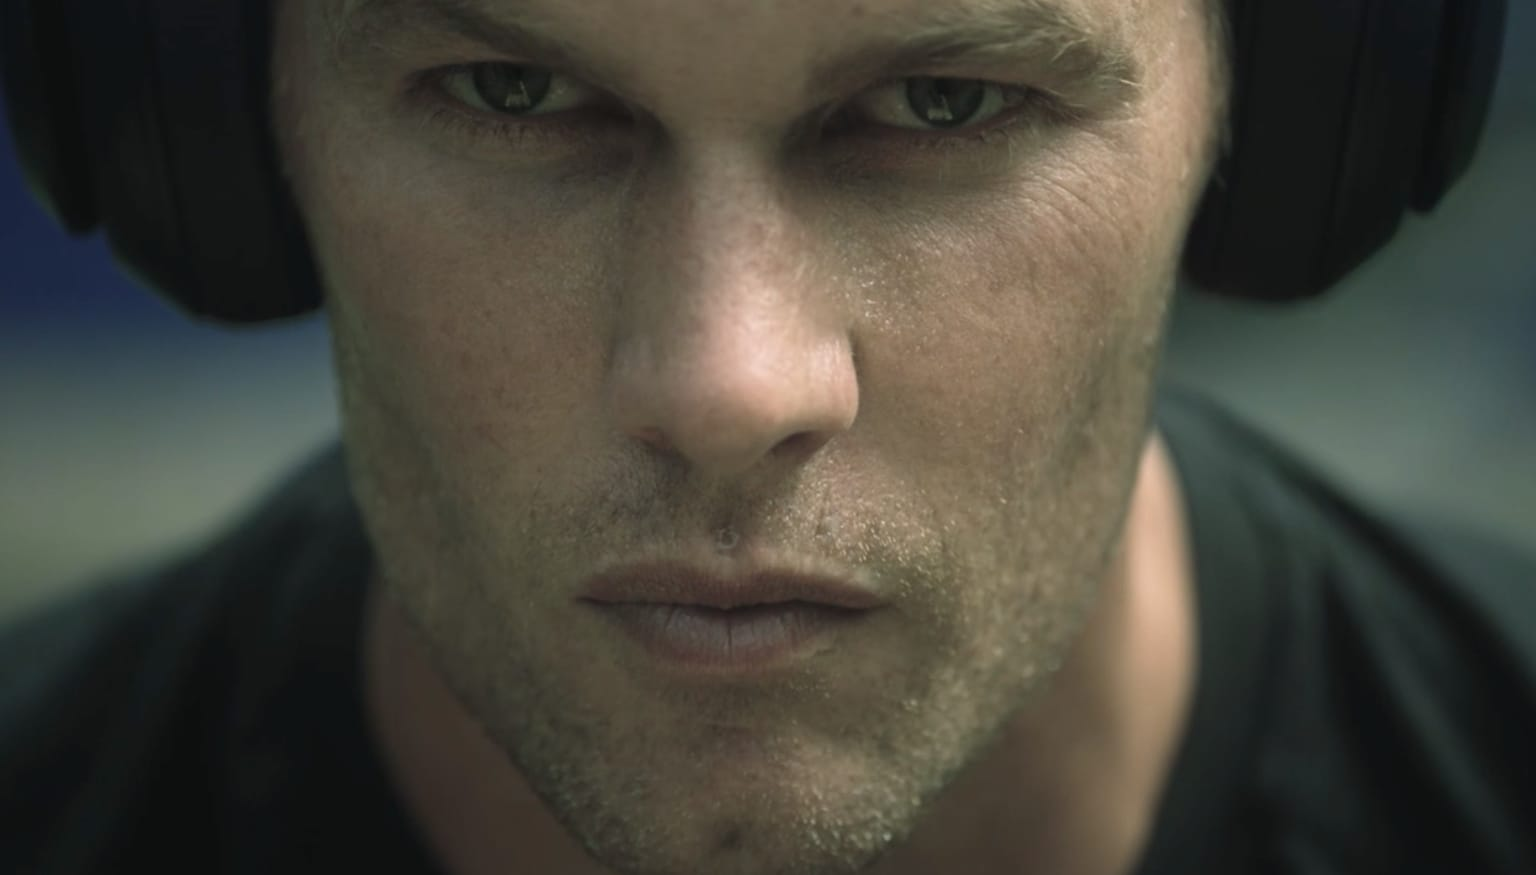 Beats by Dre: Super Bowl with Tom Brady